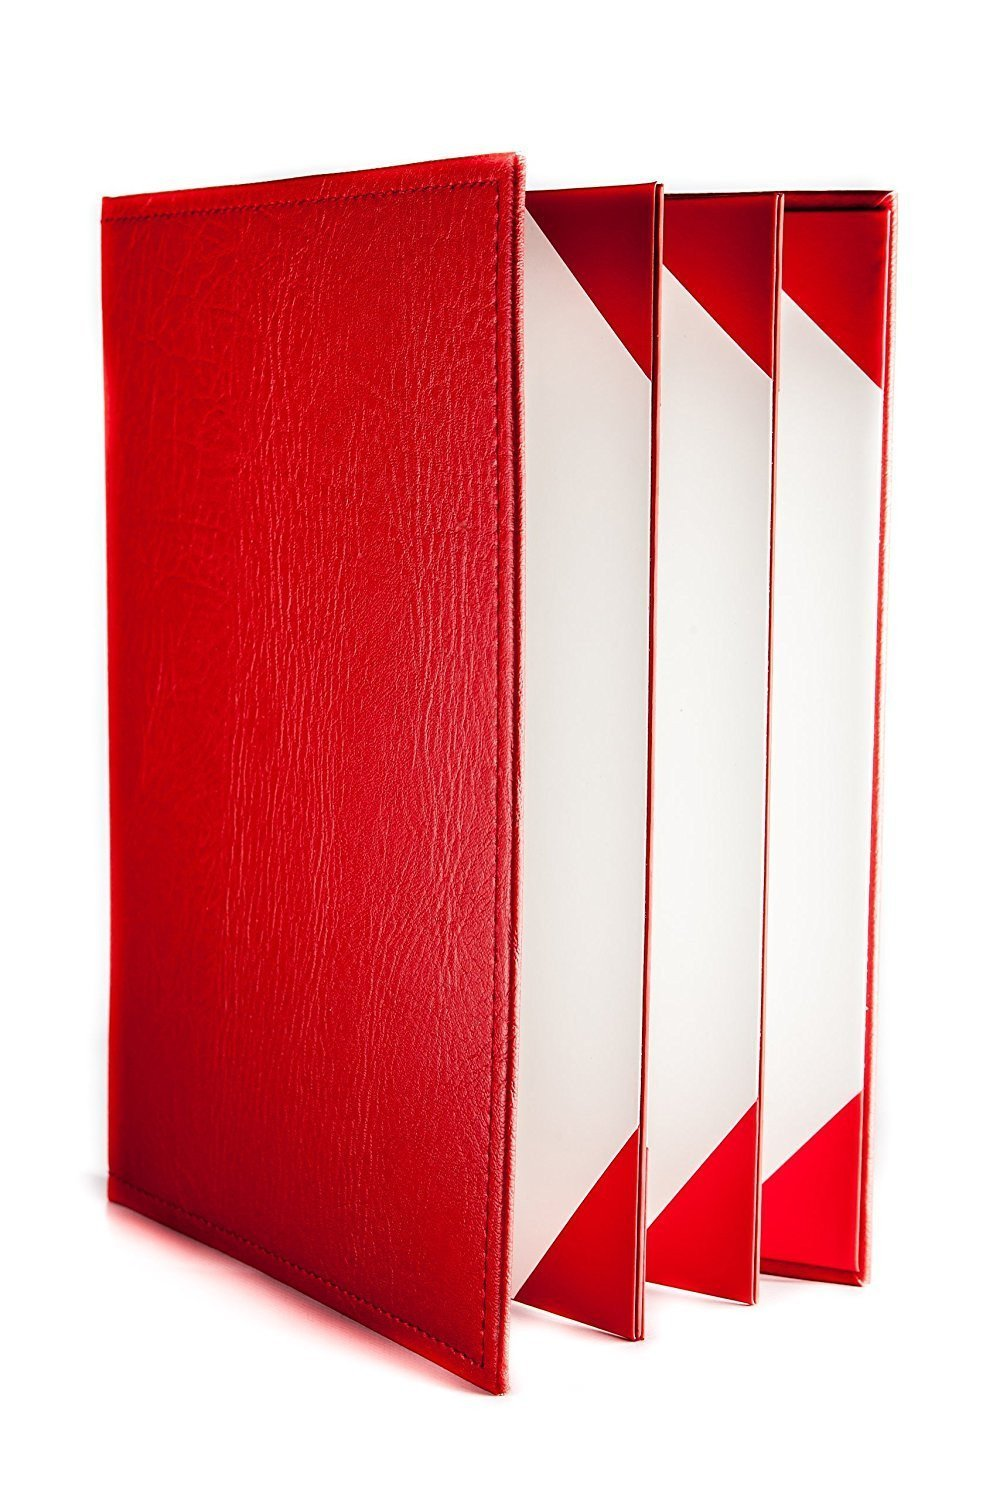 Menu Covers Made In Italian Faux Leather (10-Pack) - 8.5